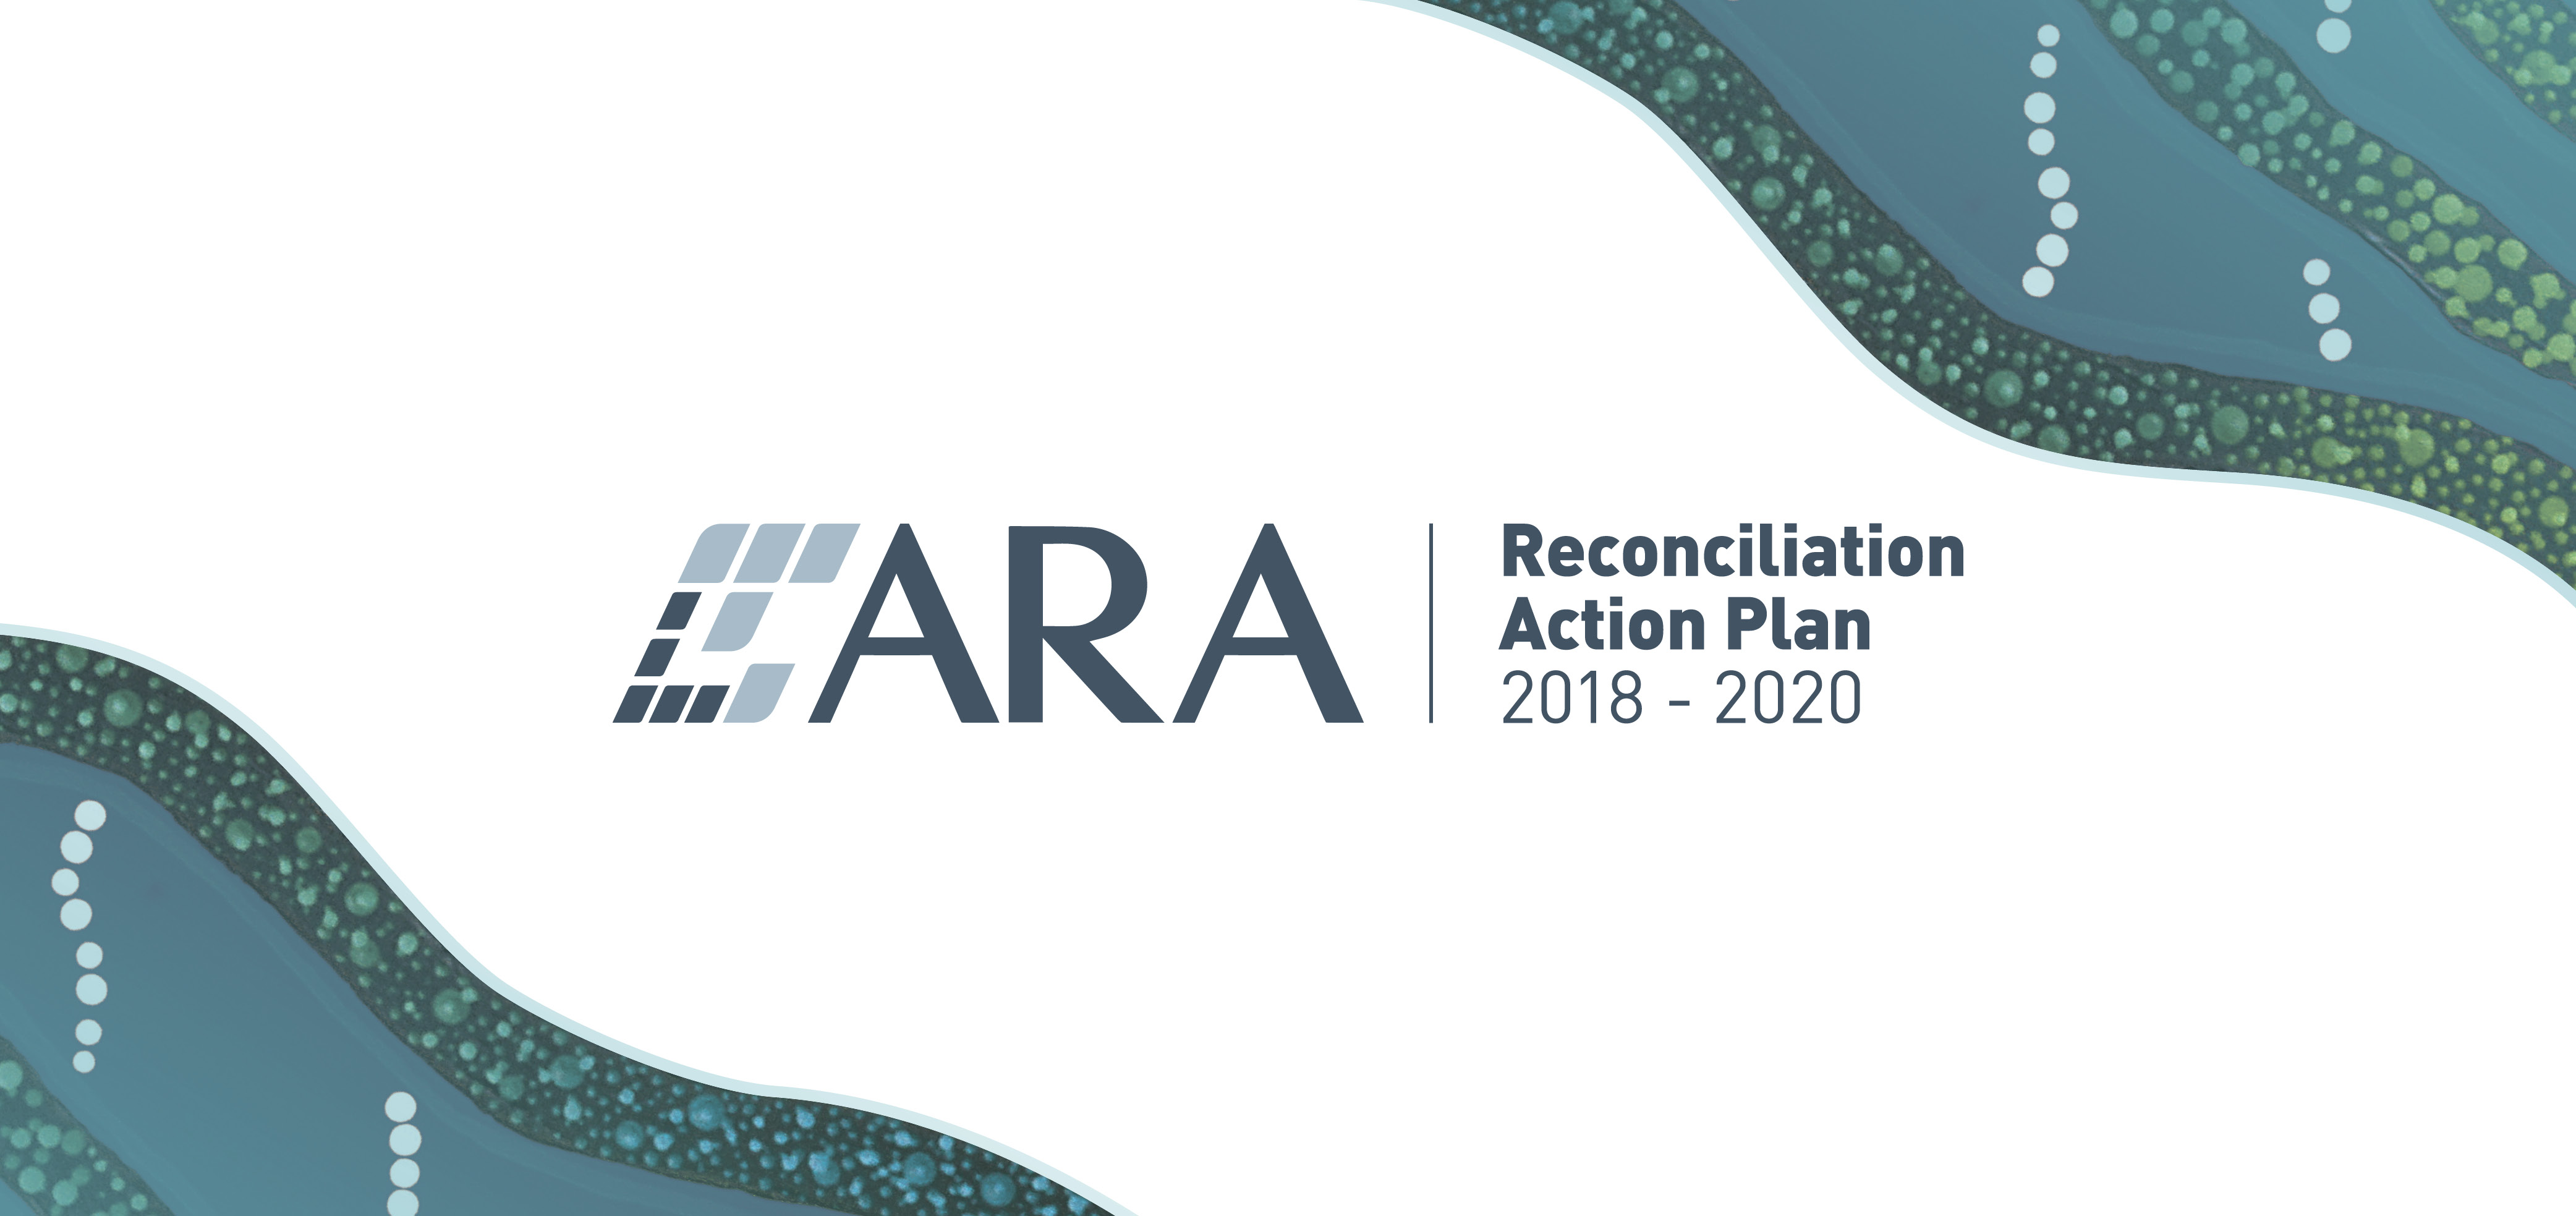 ARA launches Reconciliation Action Plan for 2018-2020 - ARA